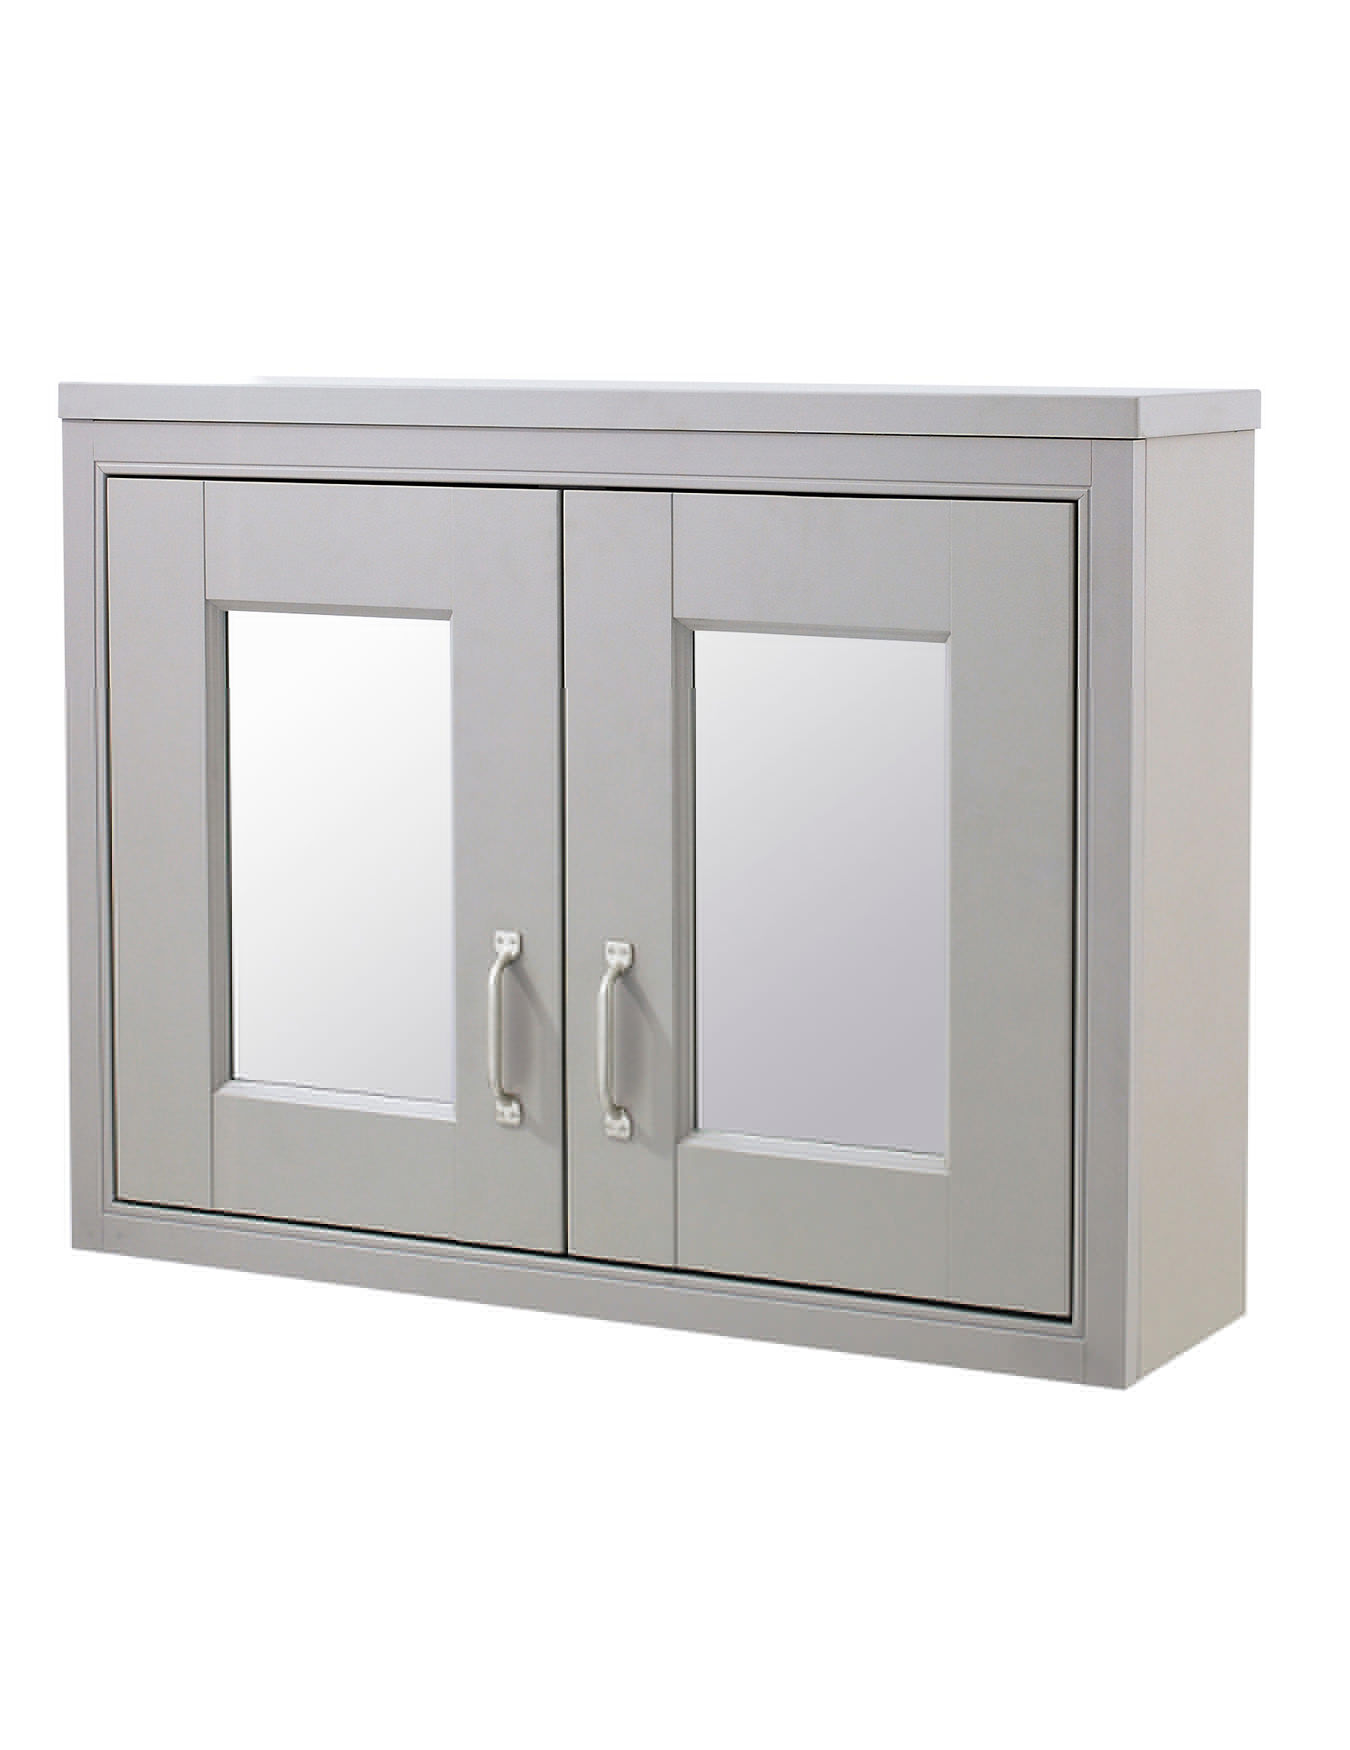 Mirror Bathroom Cabinets Uk Old London Stone Grey 800mm Mirror Cabinet Nlv415